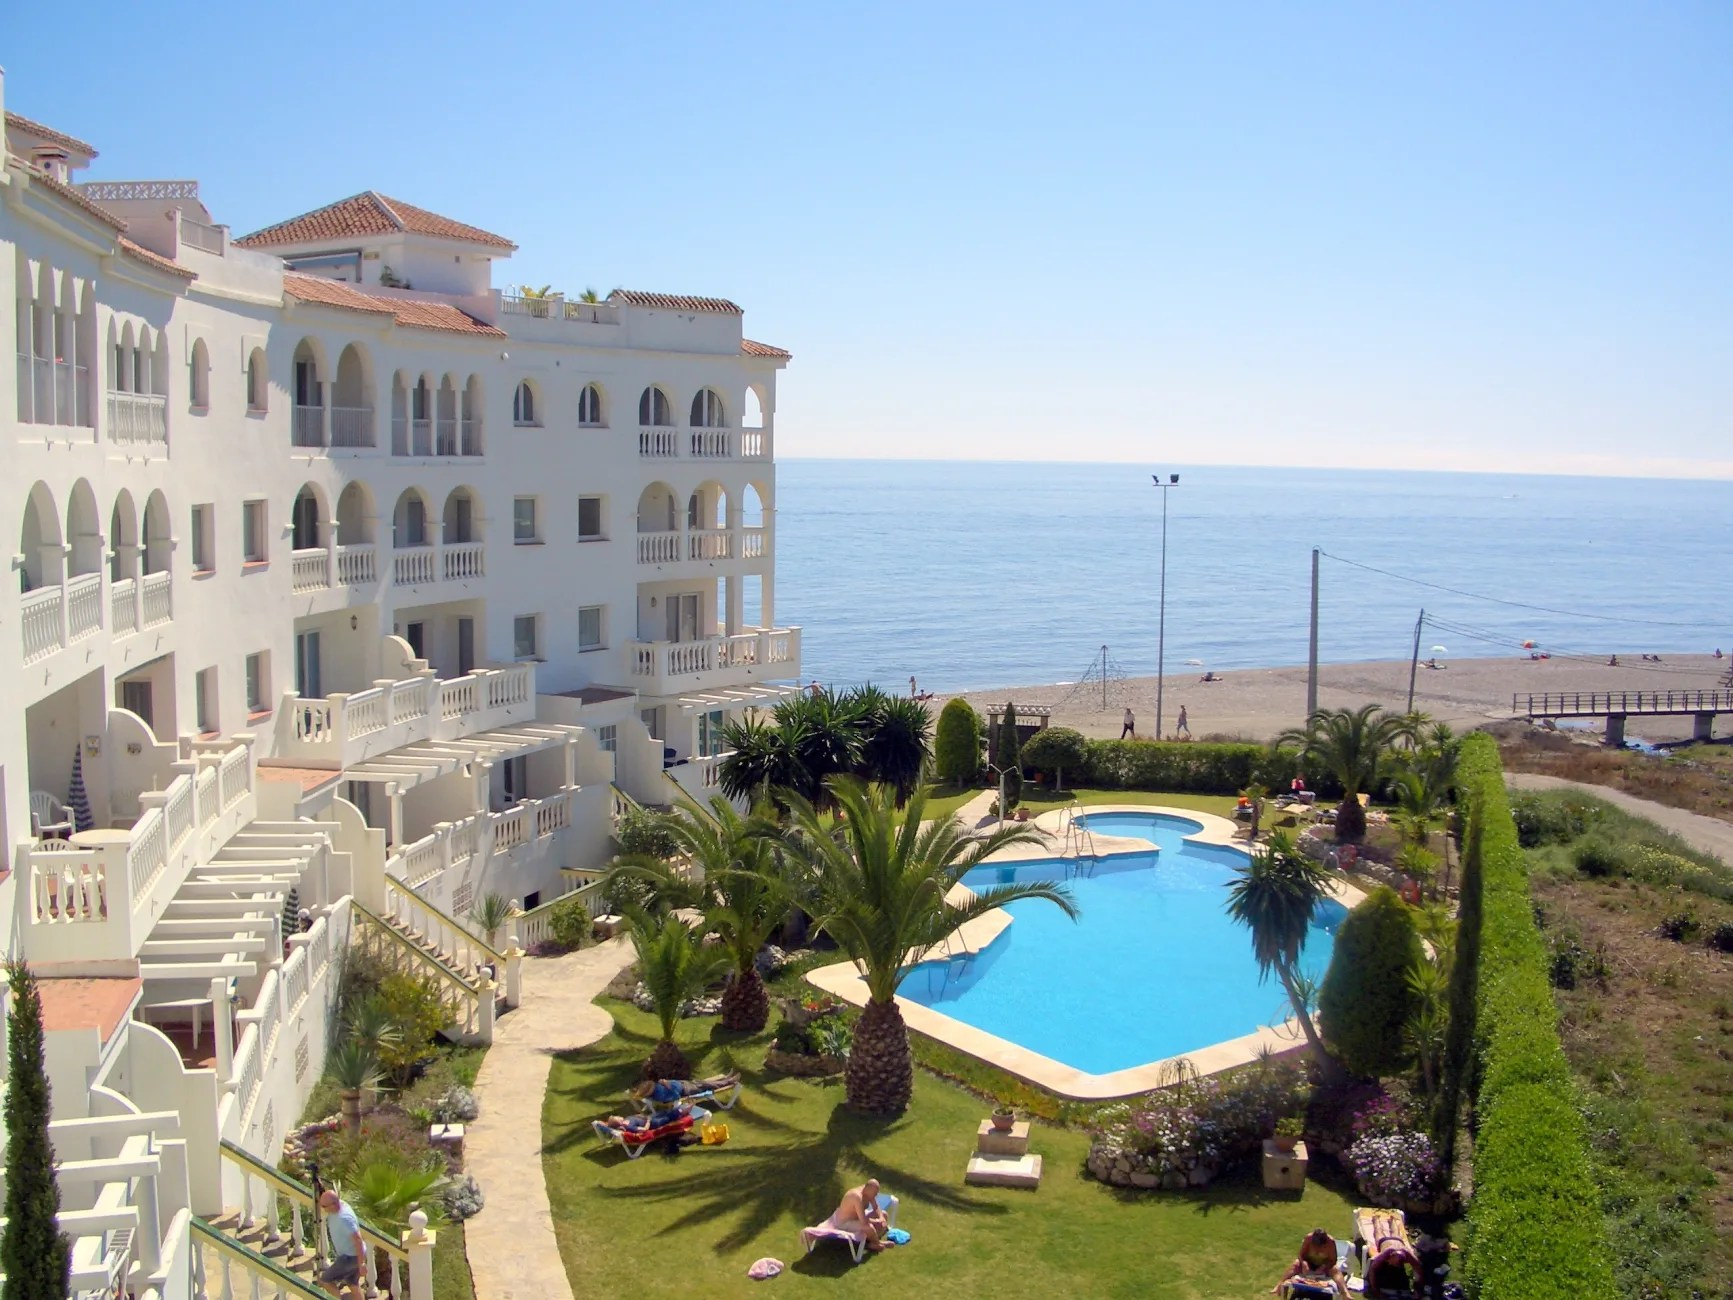 Toboso Apar Turis Vacation Rental Apartments Starnerja Nerja Trivago